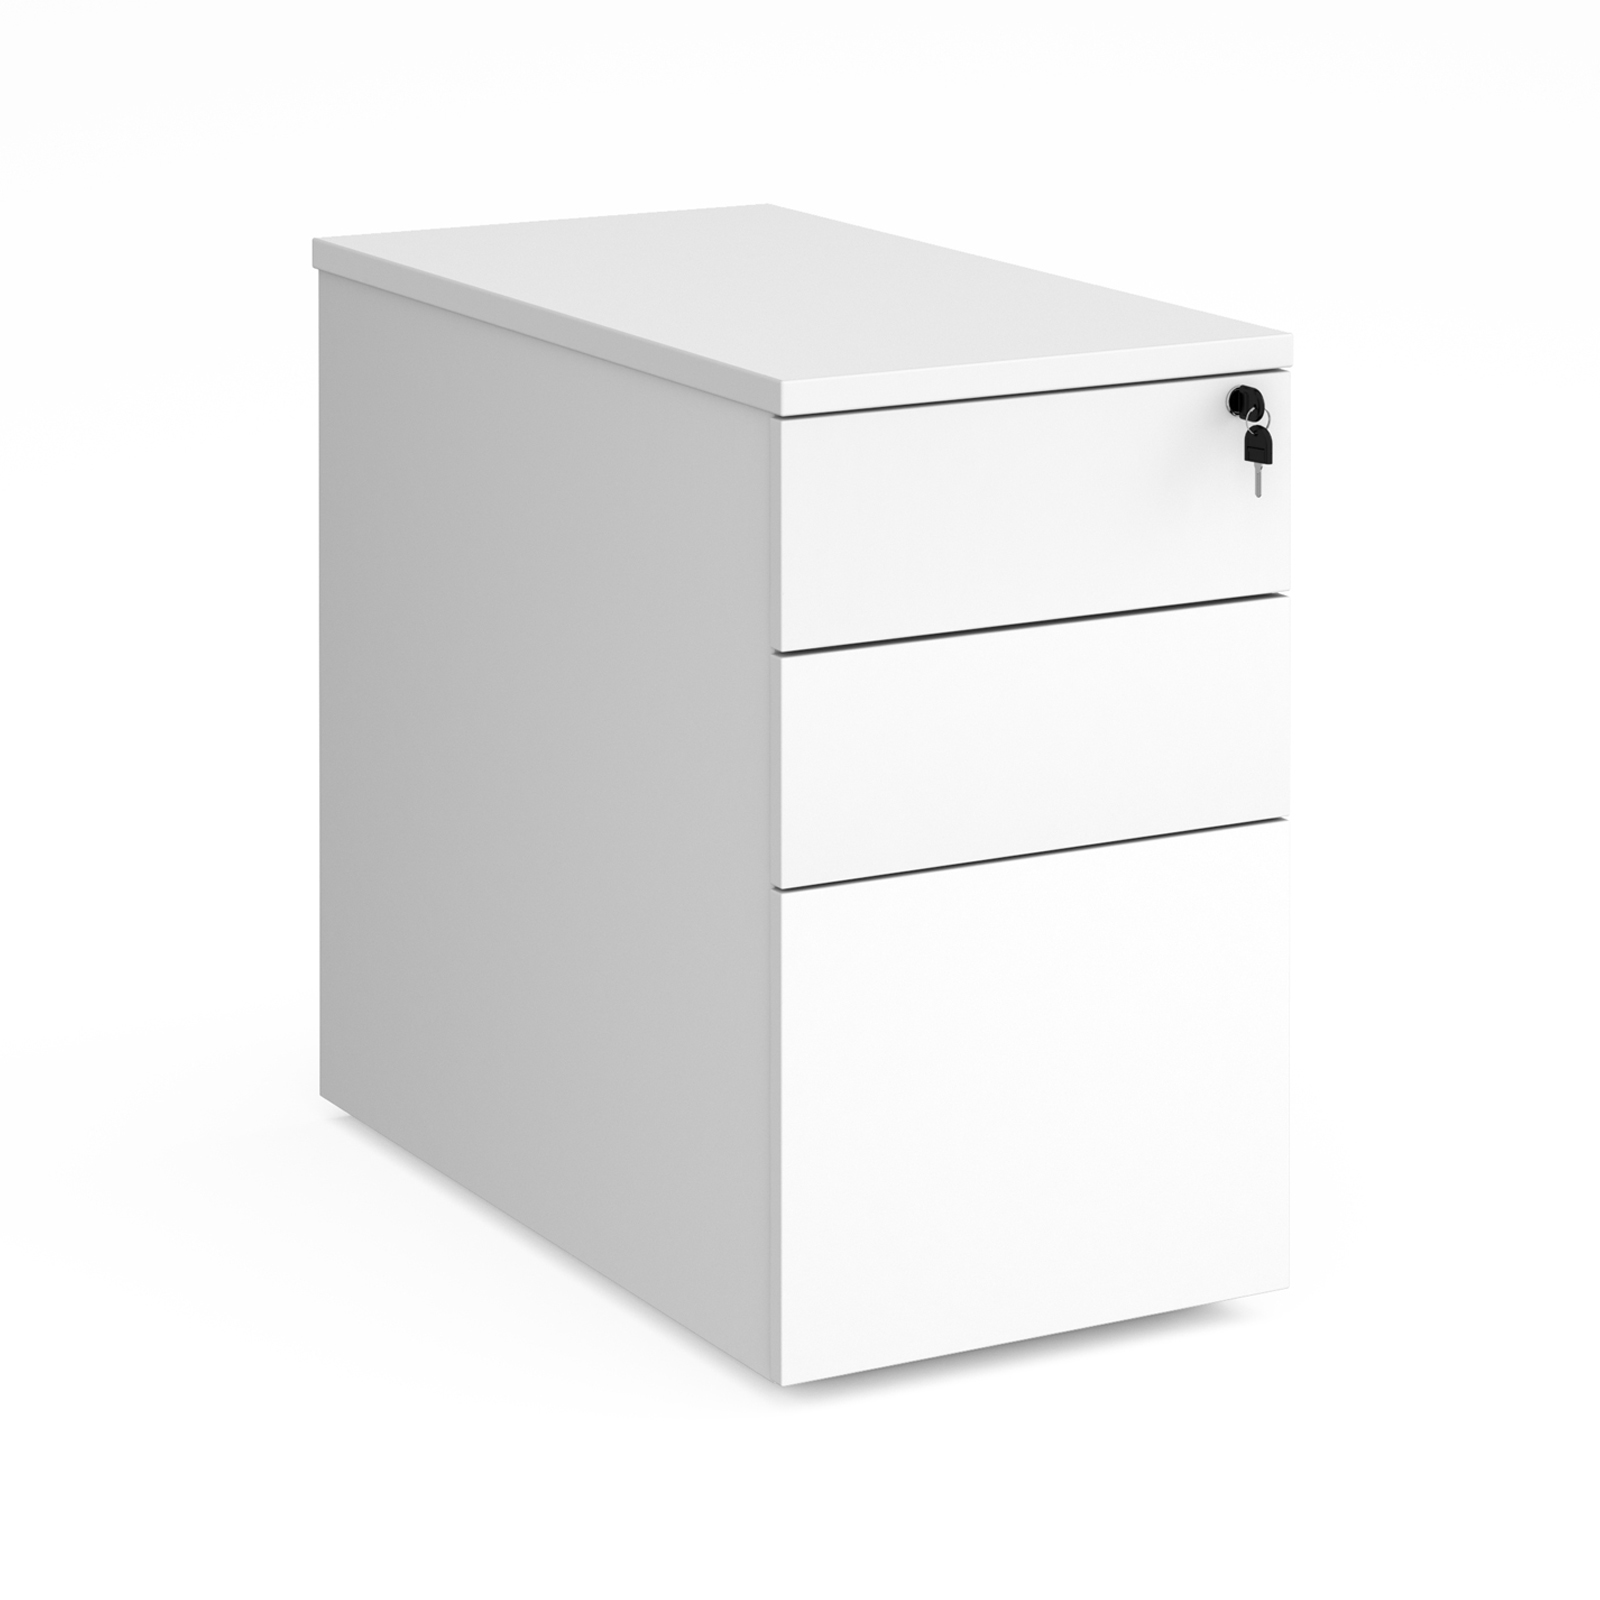 Duo deluxe desk high pedestal 800mm